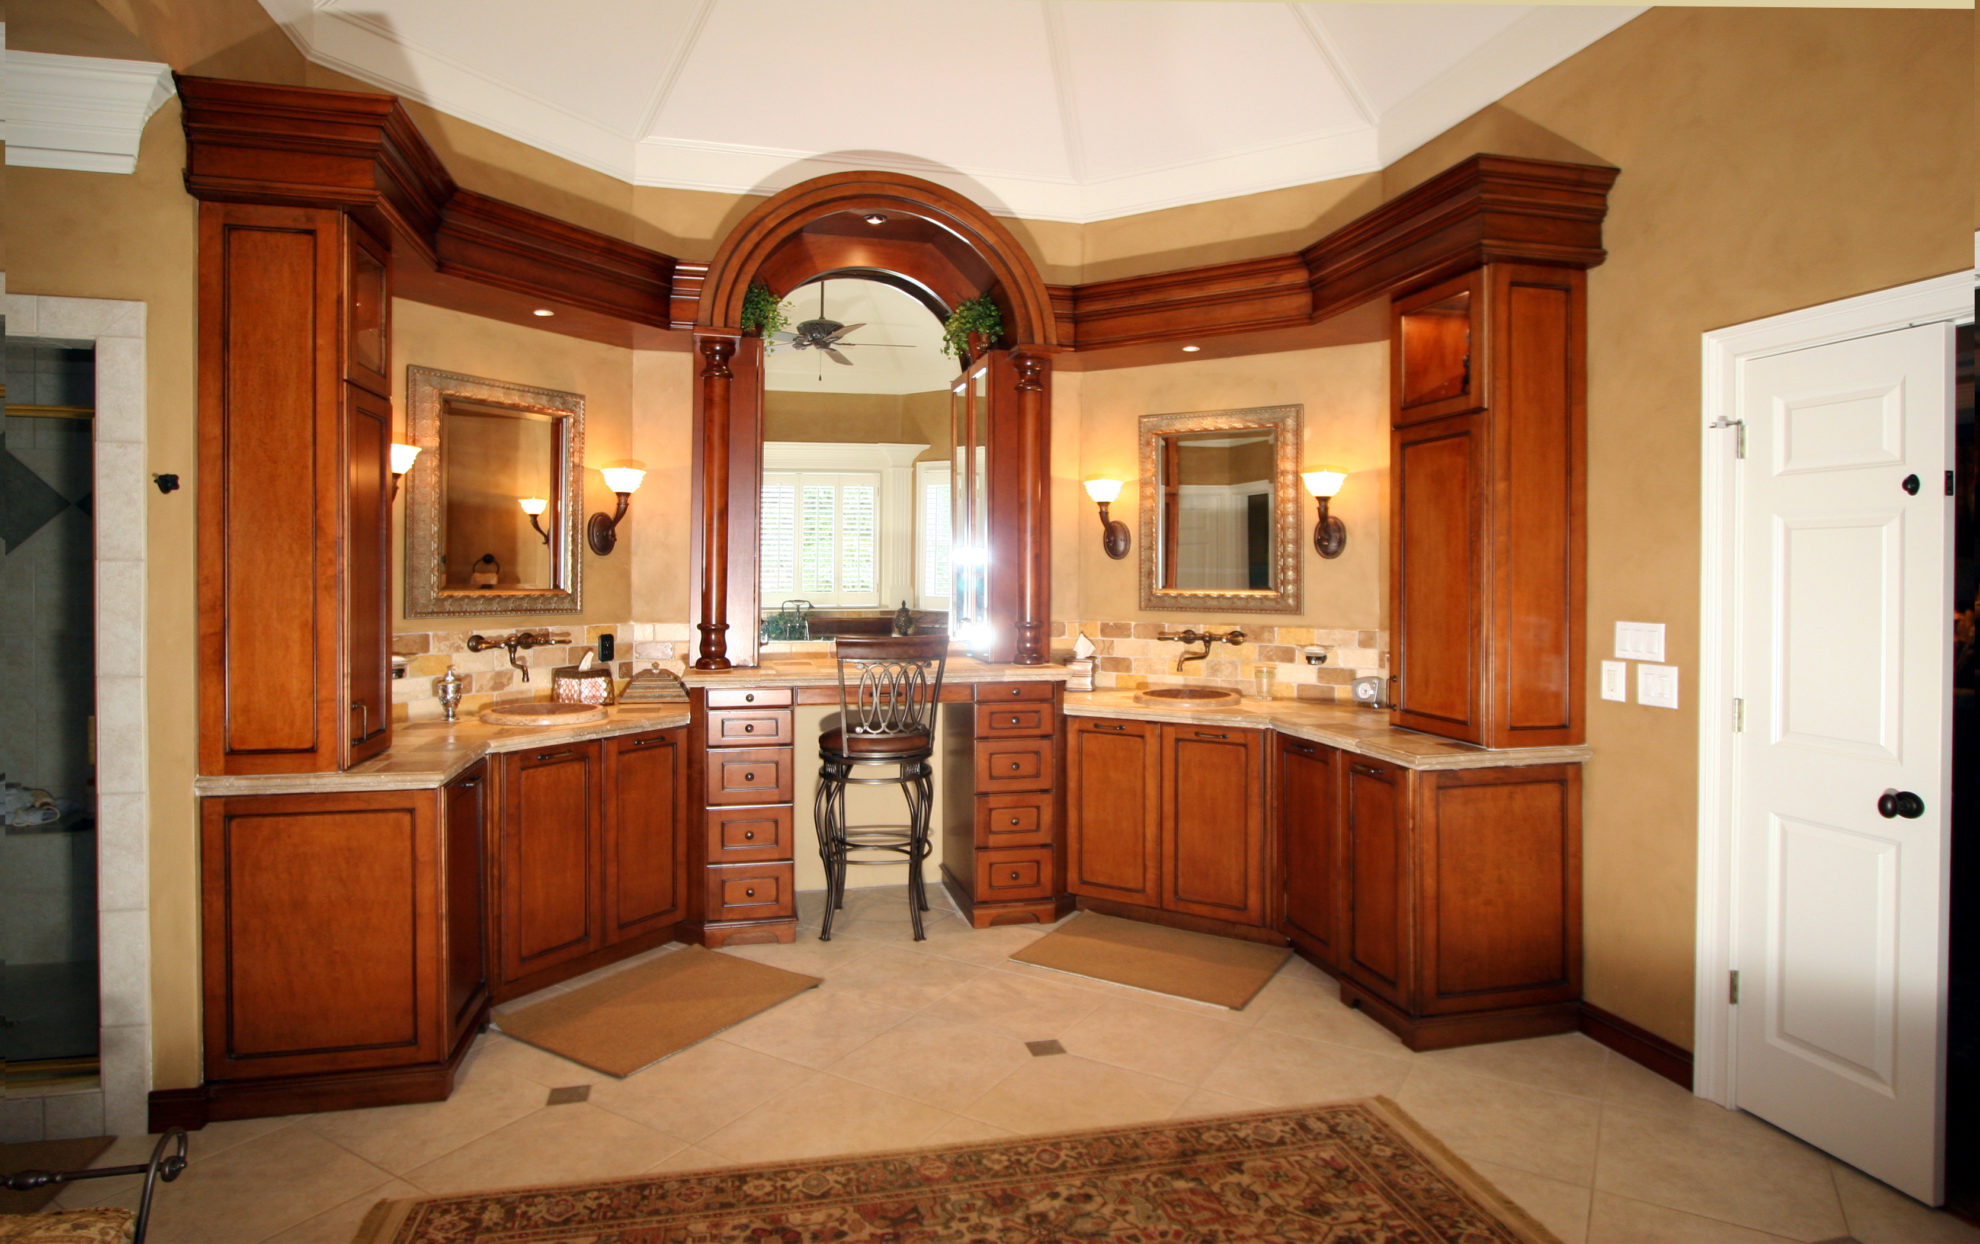 https://creativecabinetryinc.com/wp-content/uploads/2017/02/j-bathroom-master-cherry-wood-double-sink-cabinets-and-makeup-vanity-e1548362592179.jpg